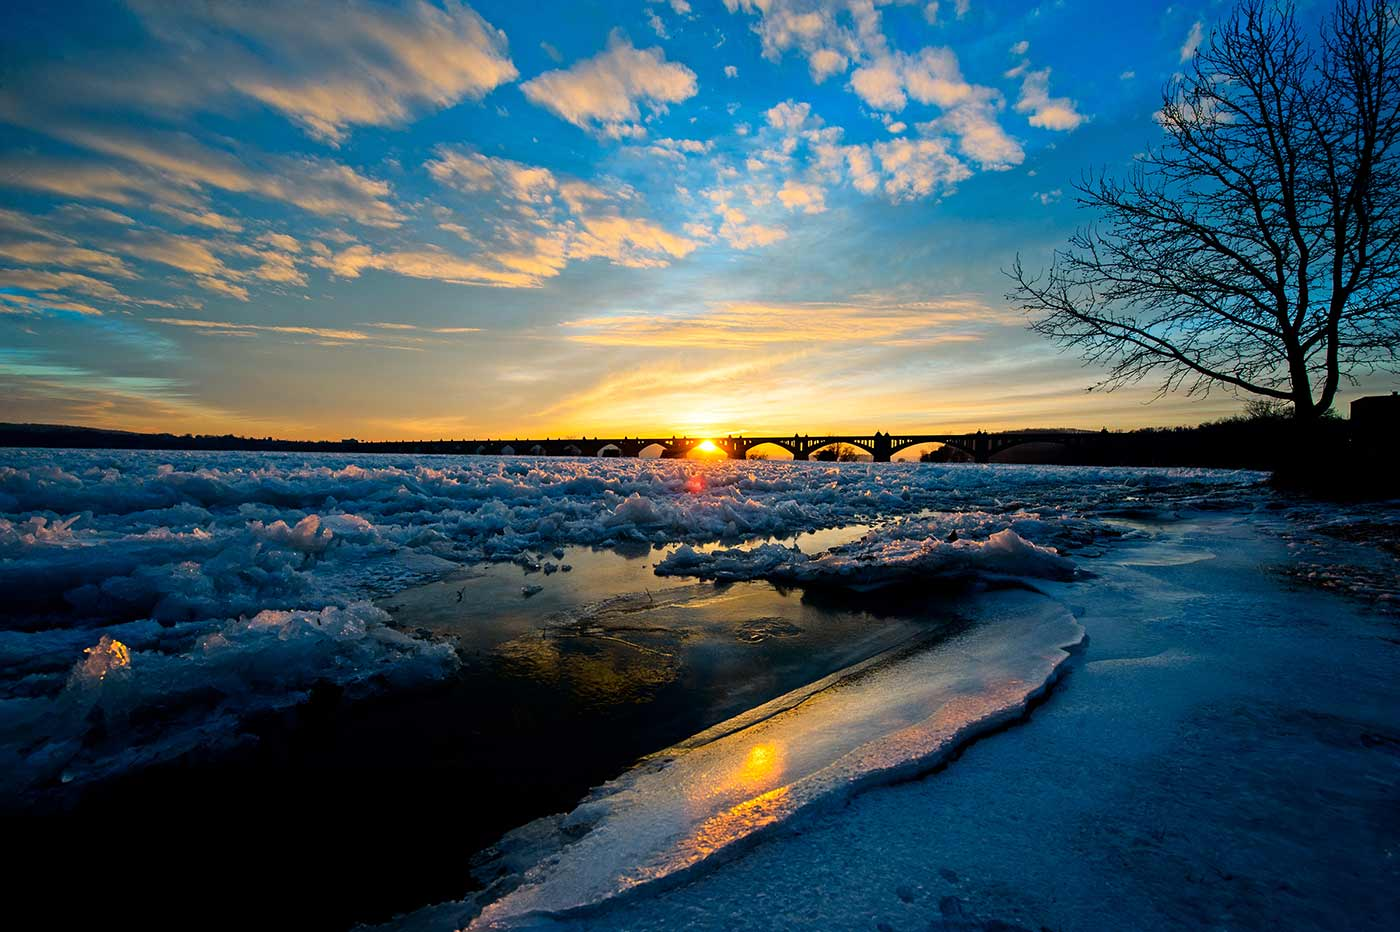 Sunrise photo of the cracked pack ice on the frozen Susquehanna River, Wrightsville, PA. Winter 2015